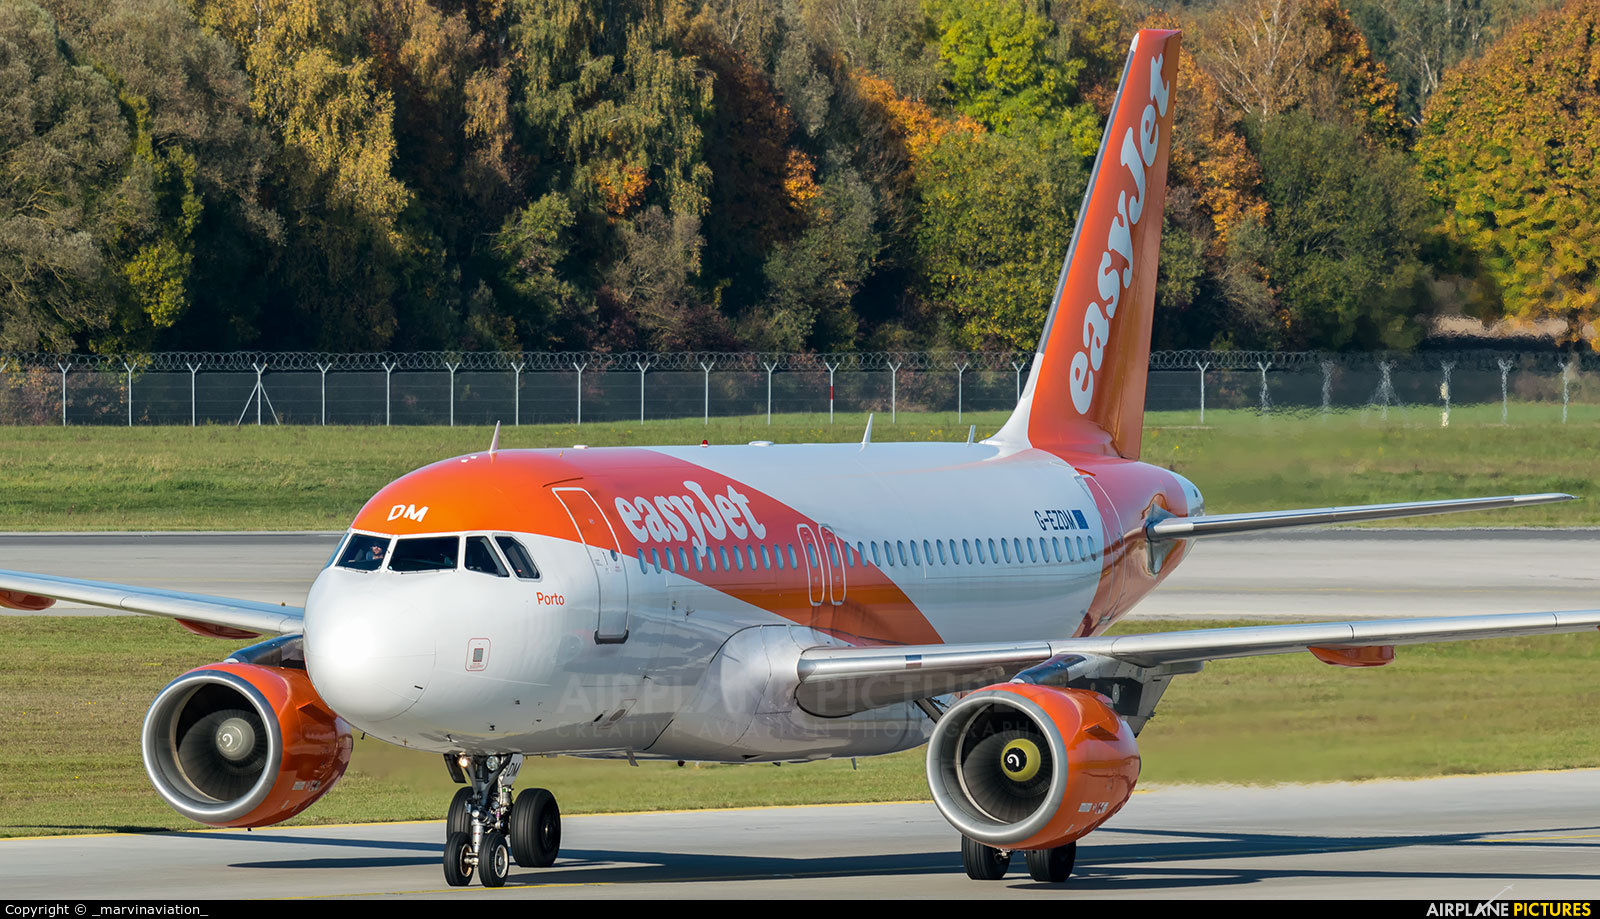 easyJet G-EZDM aircraft at Munich